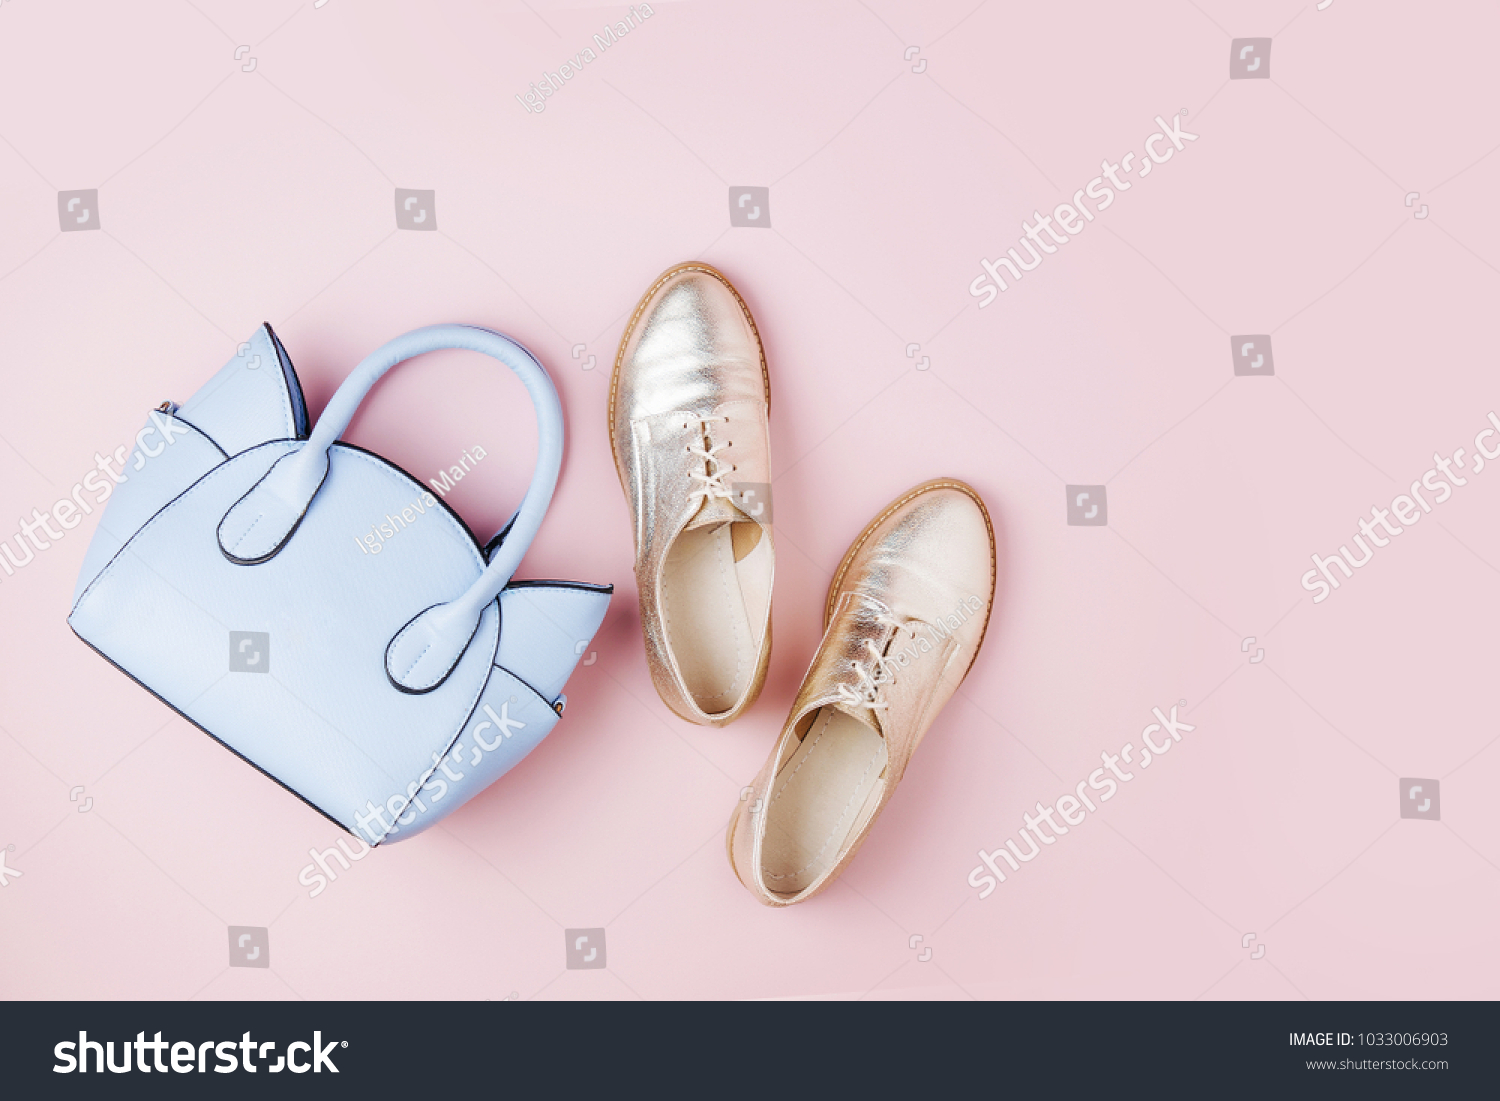 Cute blue ladies bag and stylish golden shoes. Flat lay, top view. Spring fashion concept in pastel colored #1033006903